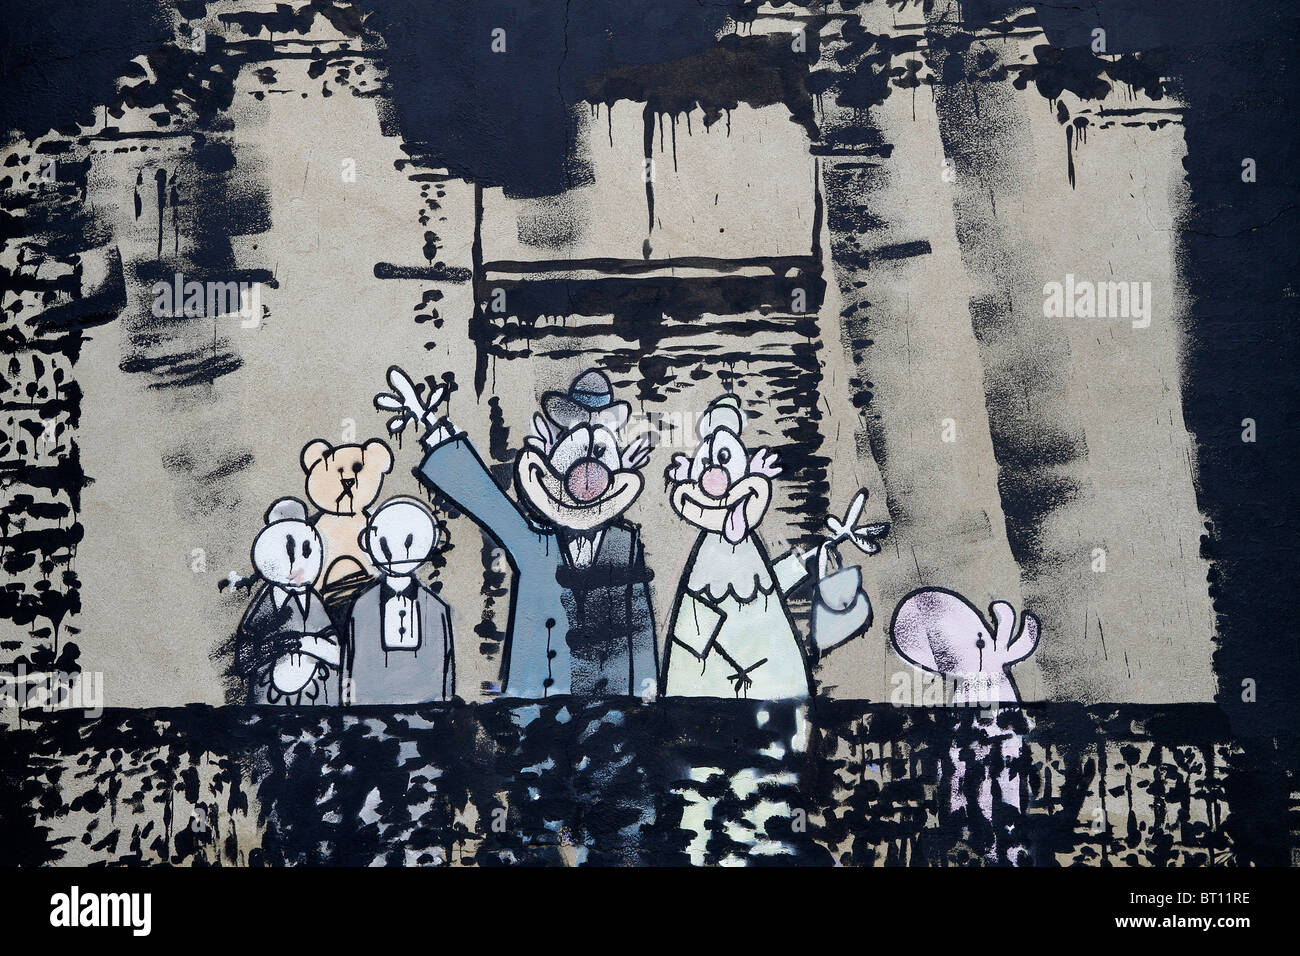 Banksy royal family portrait, stencil graffiti, London Stoke Newington Church Street, street art contemporary urban - Stock Image